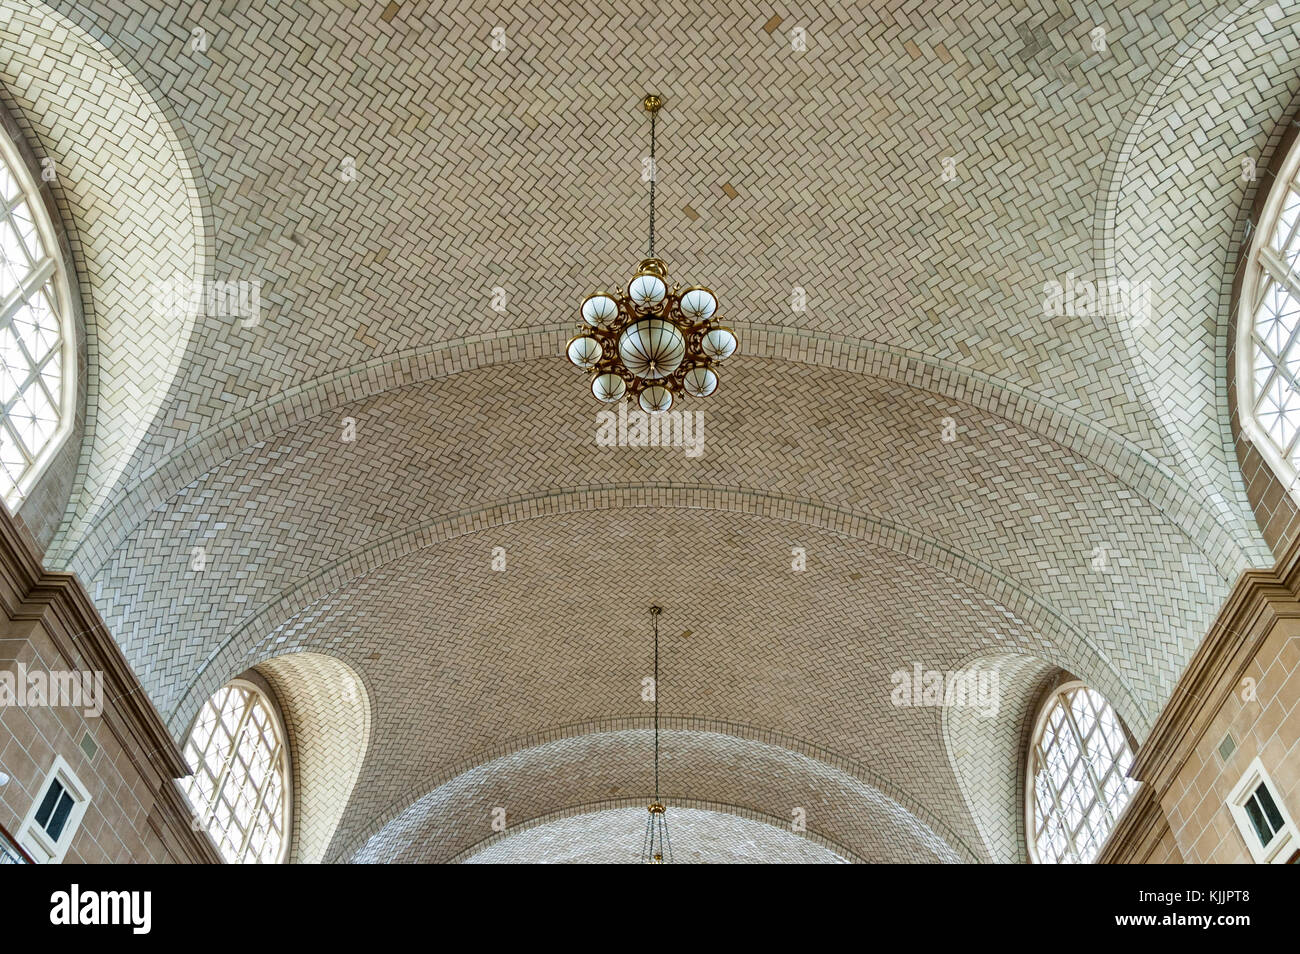 Ceiling tiles stock photos ceiling tiles stock images alamy interior of neoclassical architecture ellis island ceiling tiles and chandelier new york city new dailygadgetfo Choice Image